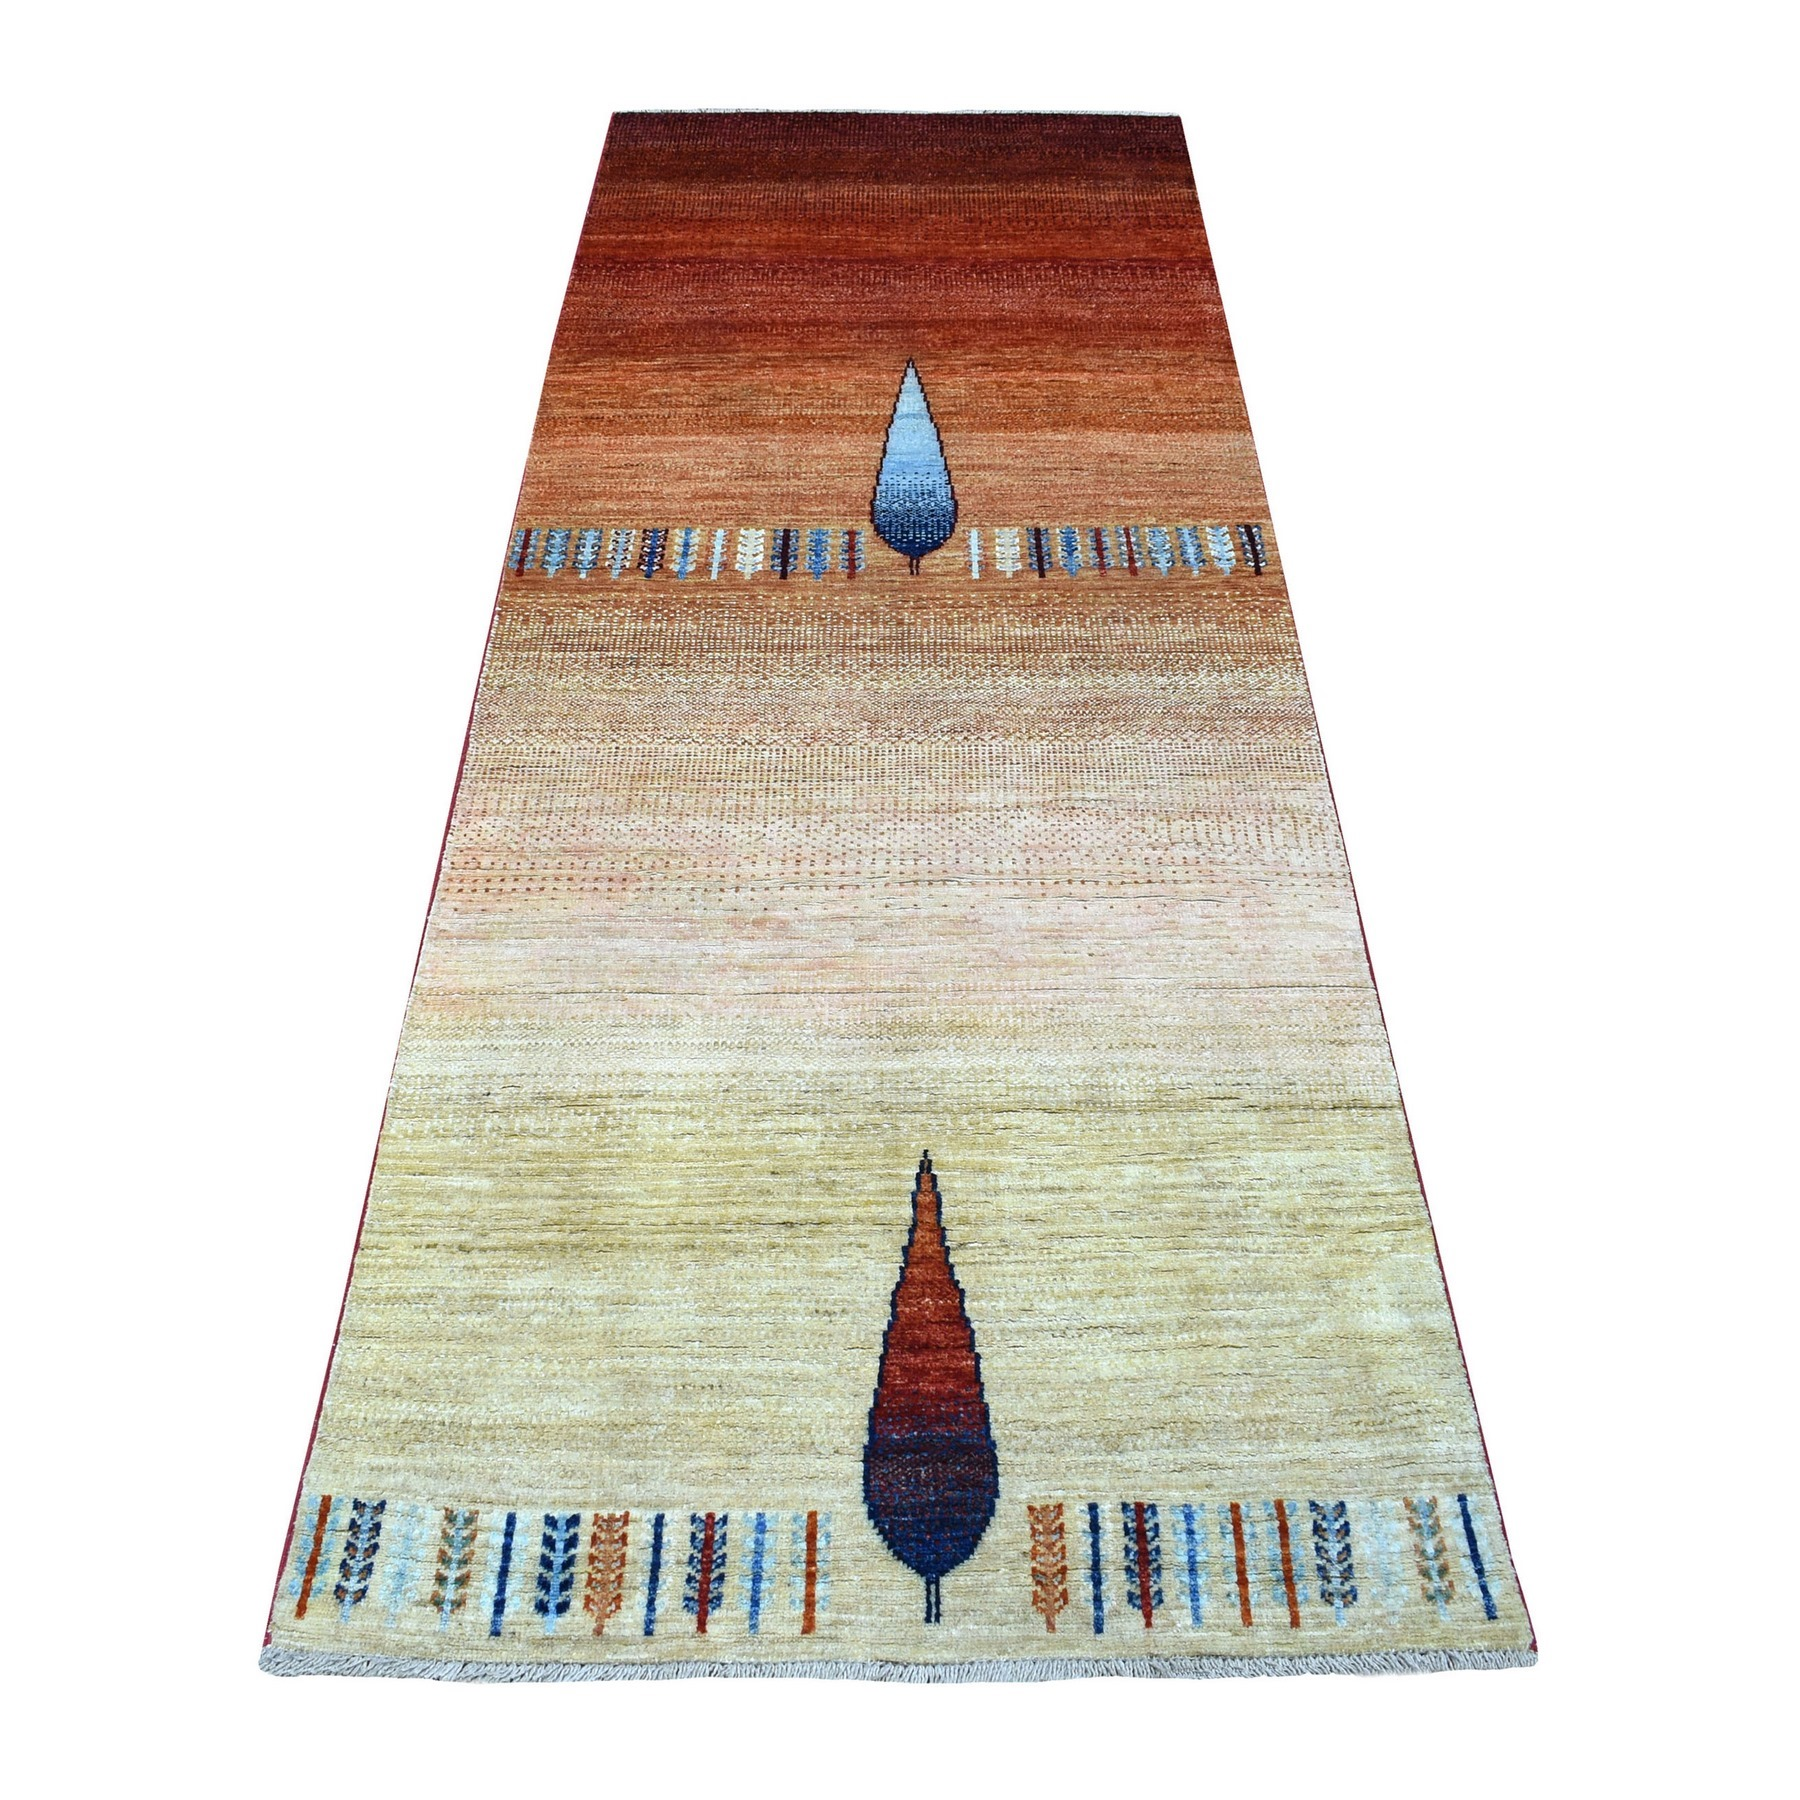 Tribal & Geometric Rugs LUV607788